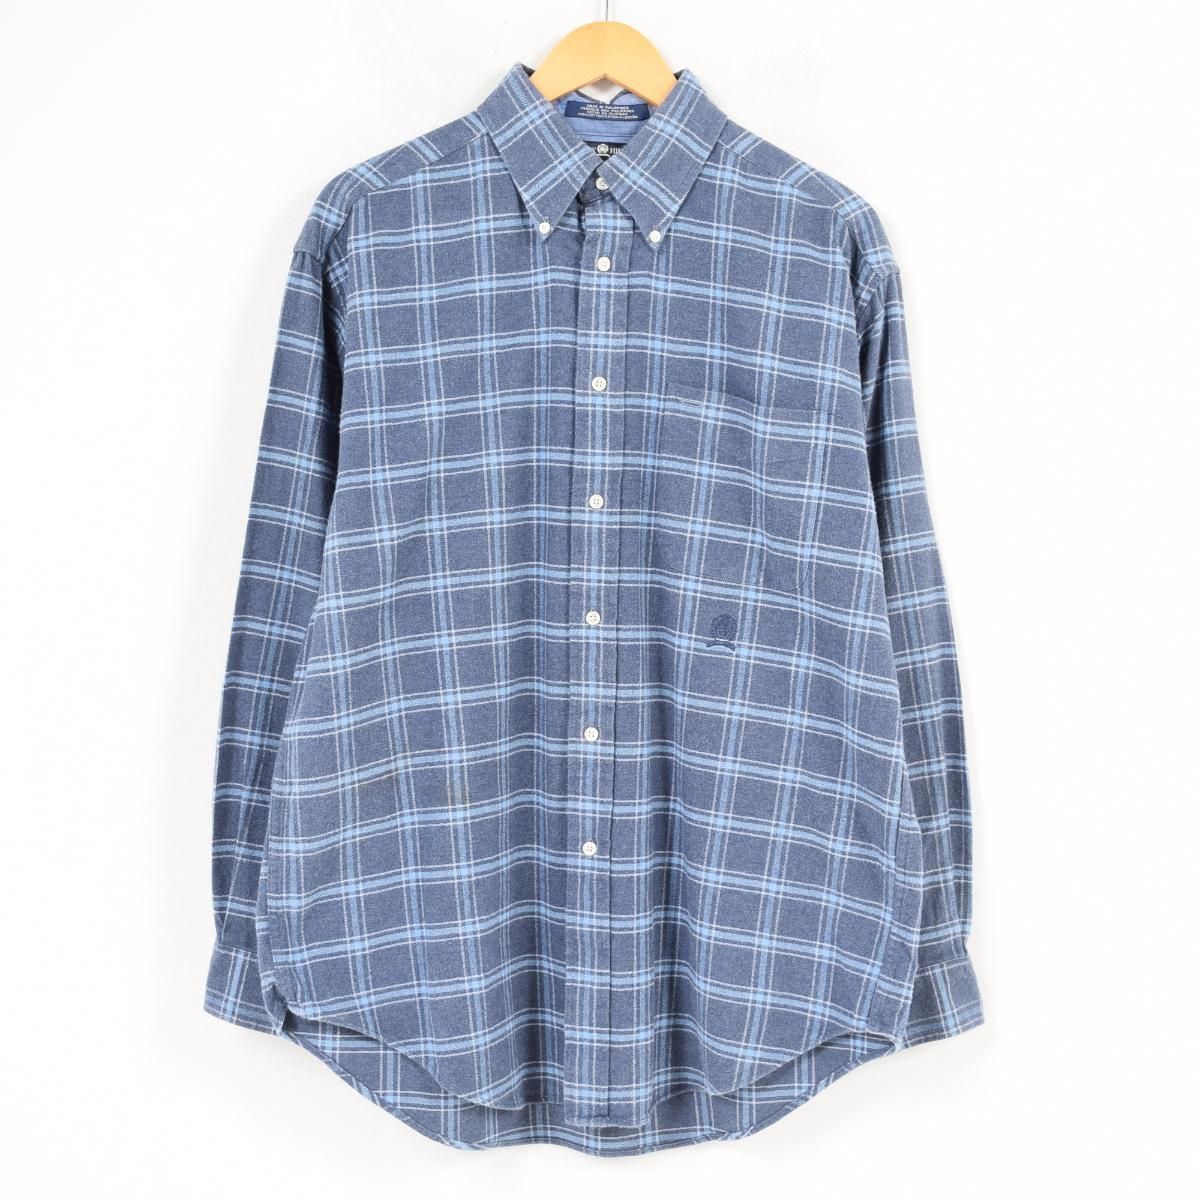 69c235a2 トミーヒルフィガー TOMMY HILFIGER tartan check long sleeves button-down collar heavy flannel  shirt men L /waq3572